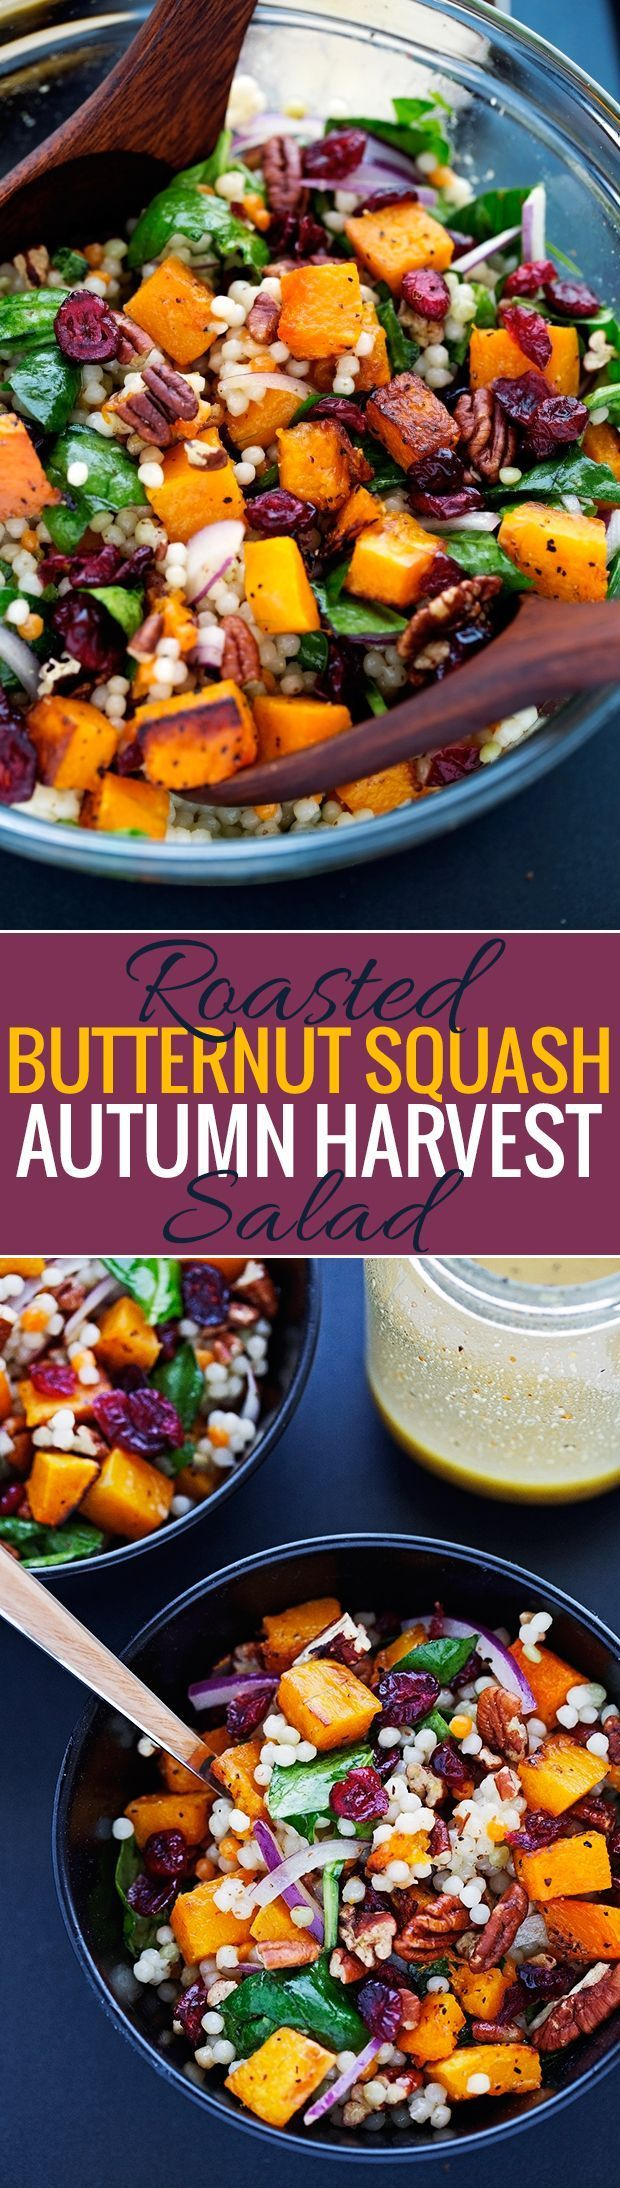 Autumn Pearl Couscous Salad with Roasted Butternut Squash - Tossed in a light dijon vinaigrette. This salad is hearty and filling!